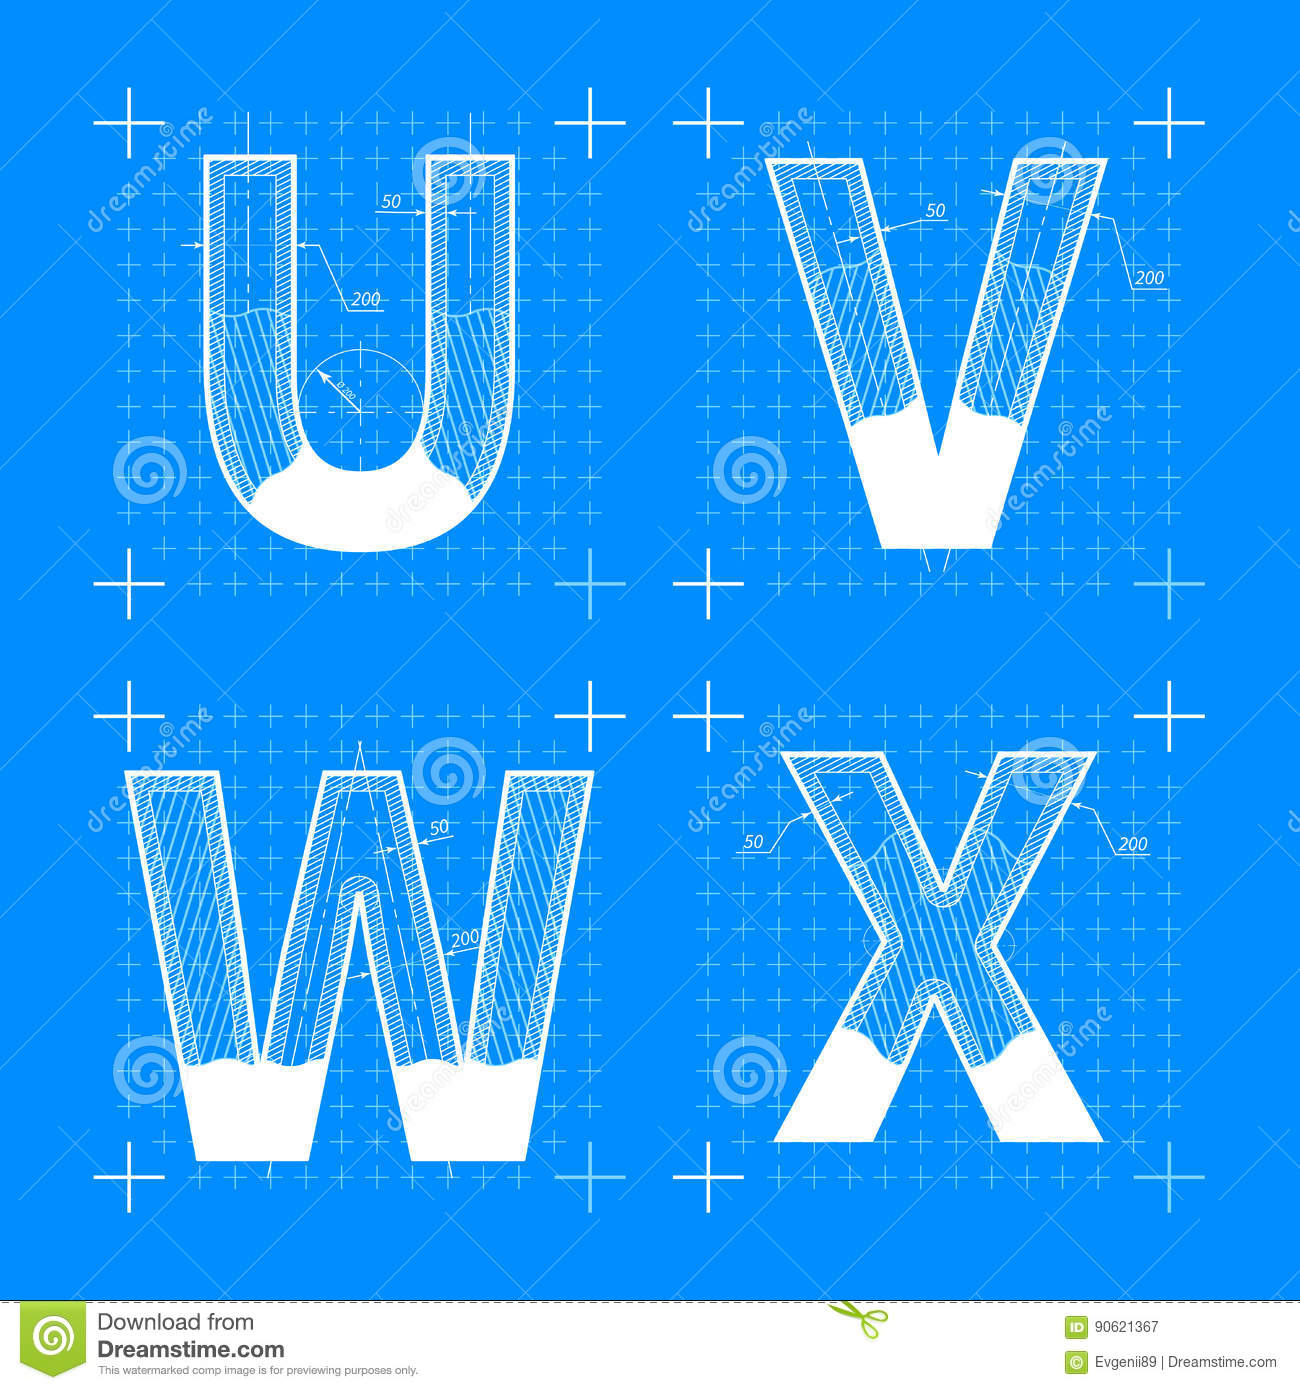 Construction Sketches Of U V W X Letters Stock Vector